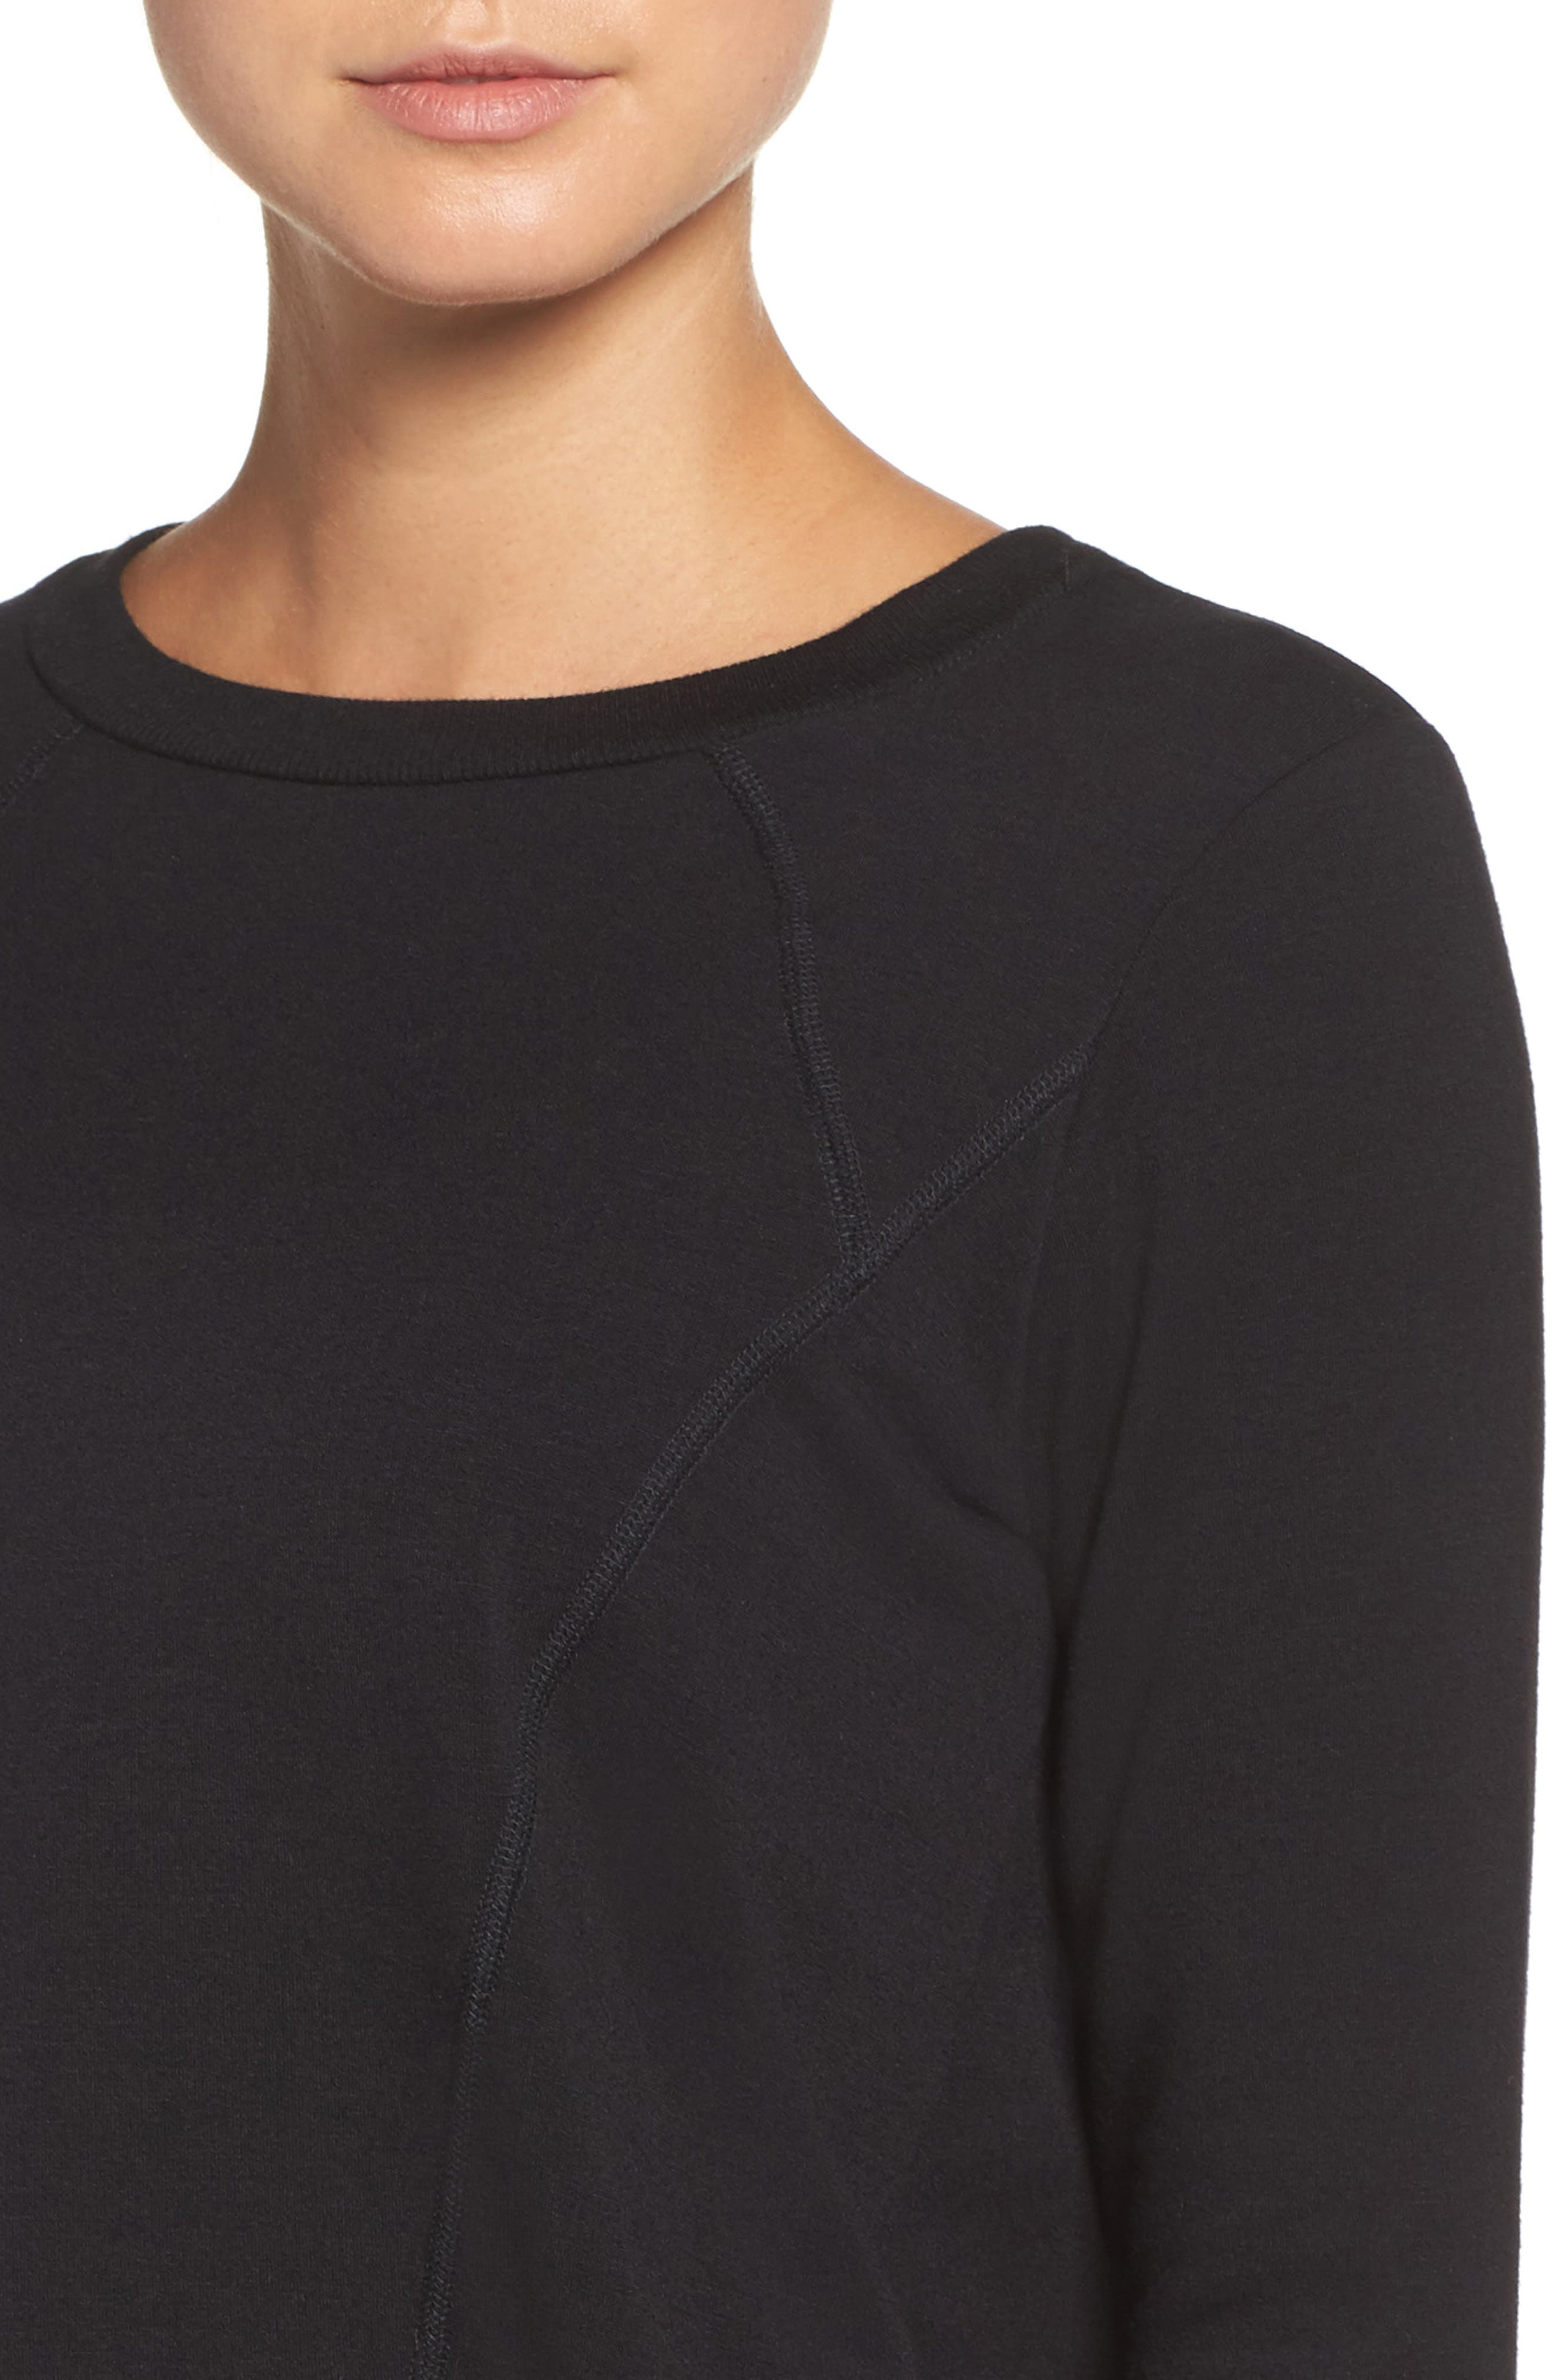 Fleece Pullover,                             Alternate thumbnail 4, color,                             001